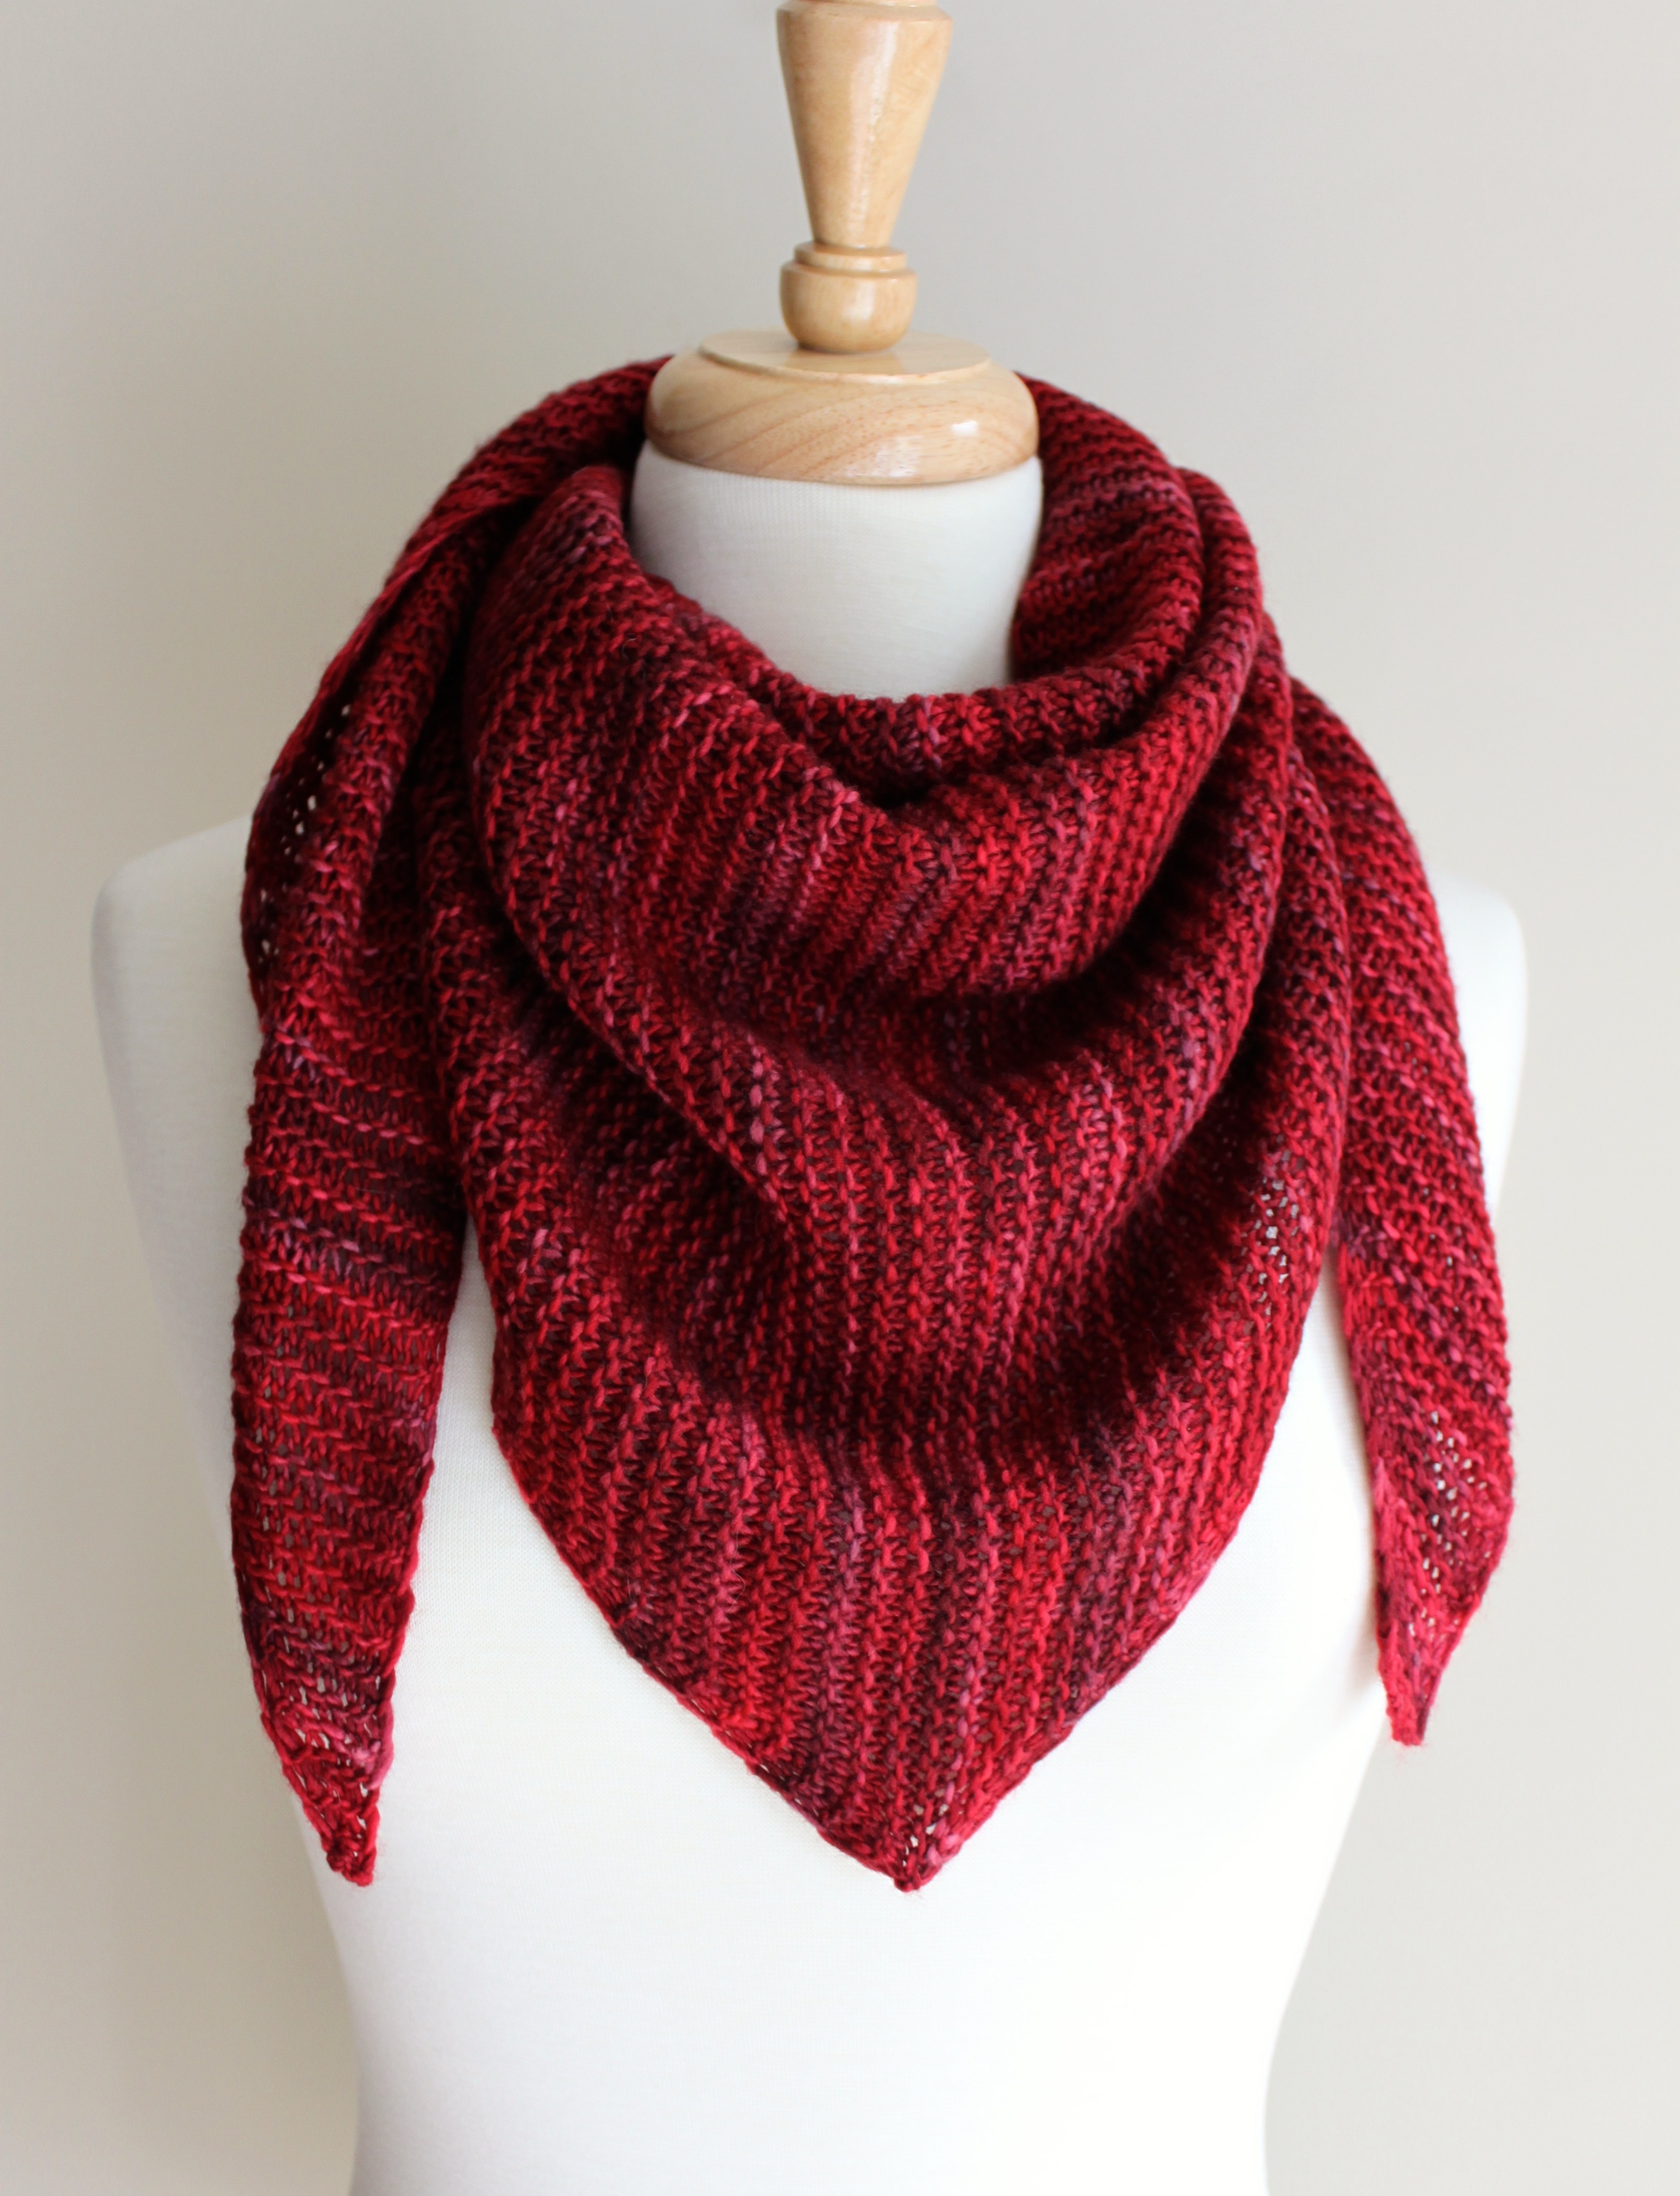 Free Knitting Patterns Awesome Free Knitting Patterns Truly Triangular Scarf Leah Of Amazing 46 Ideas Free Knitting Patterns